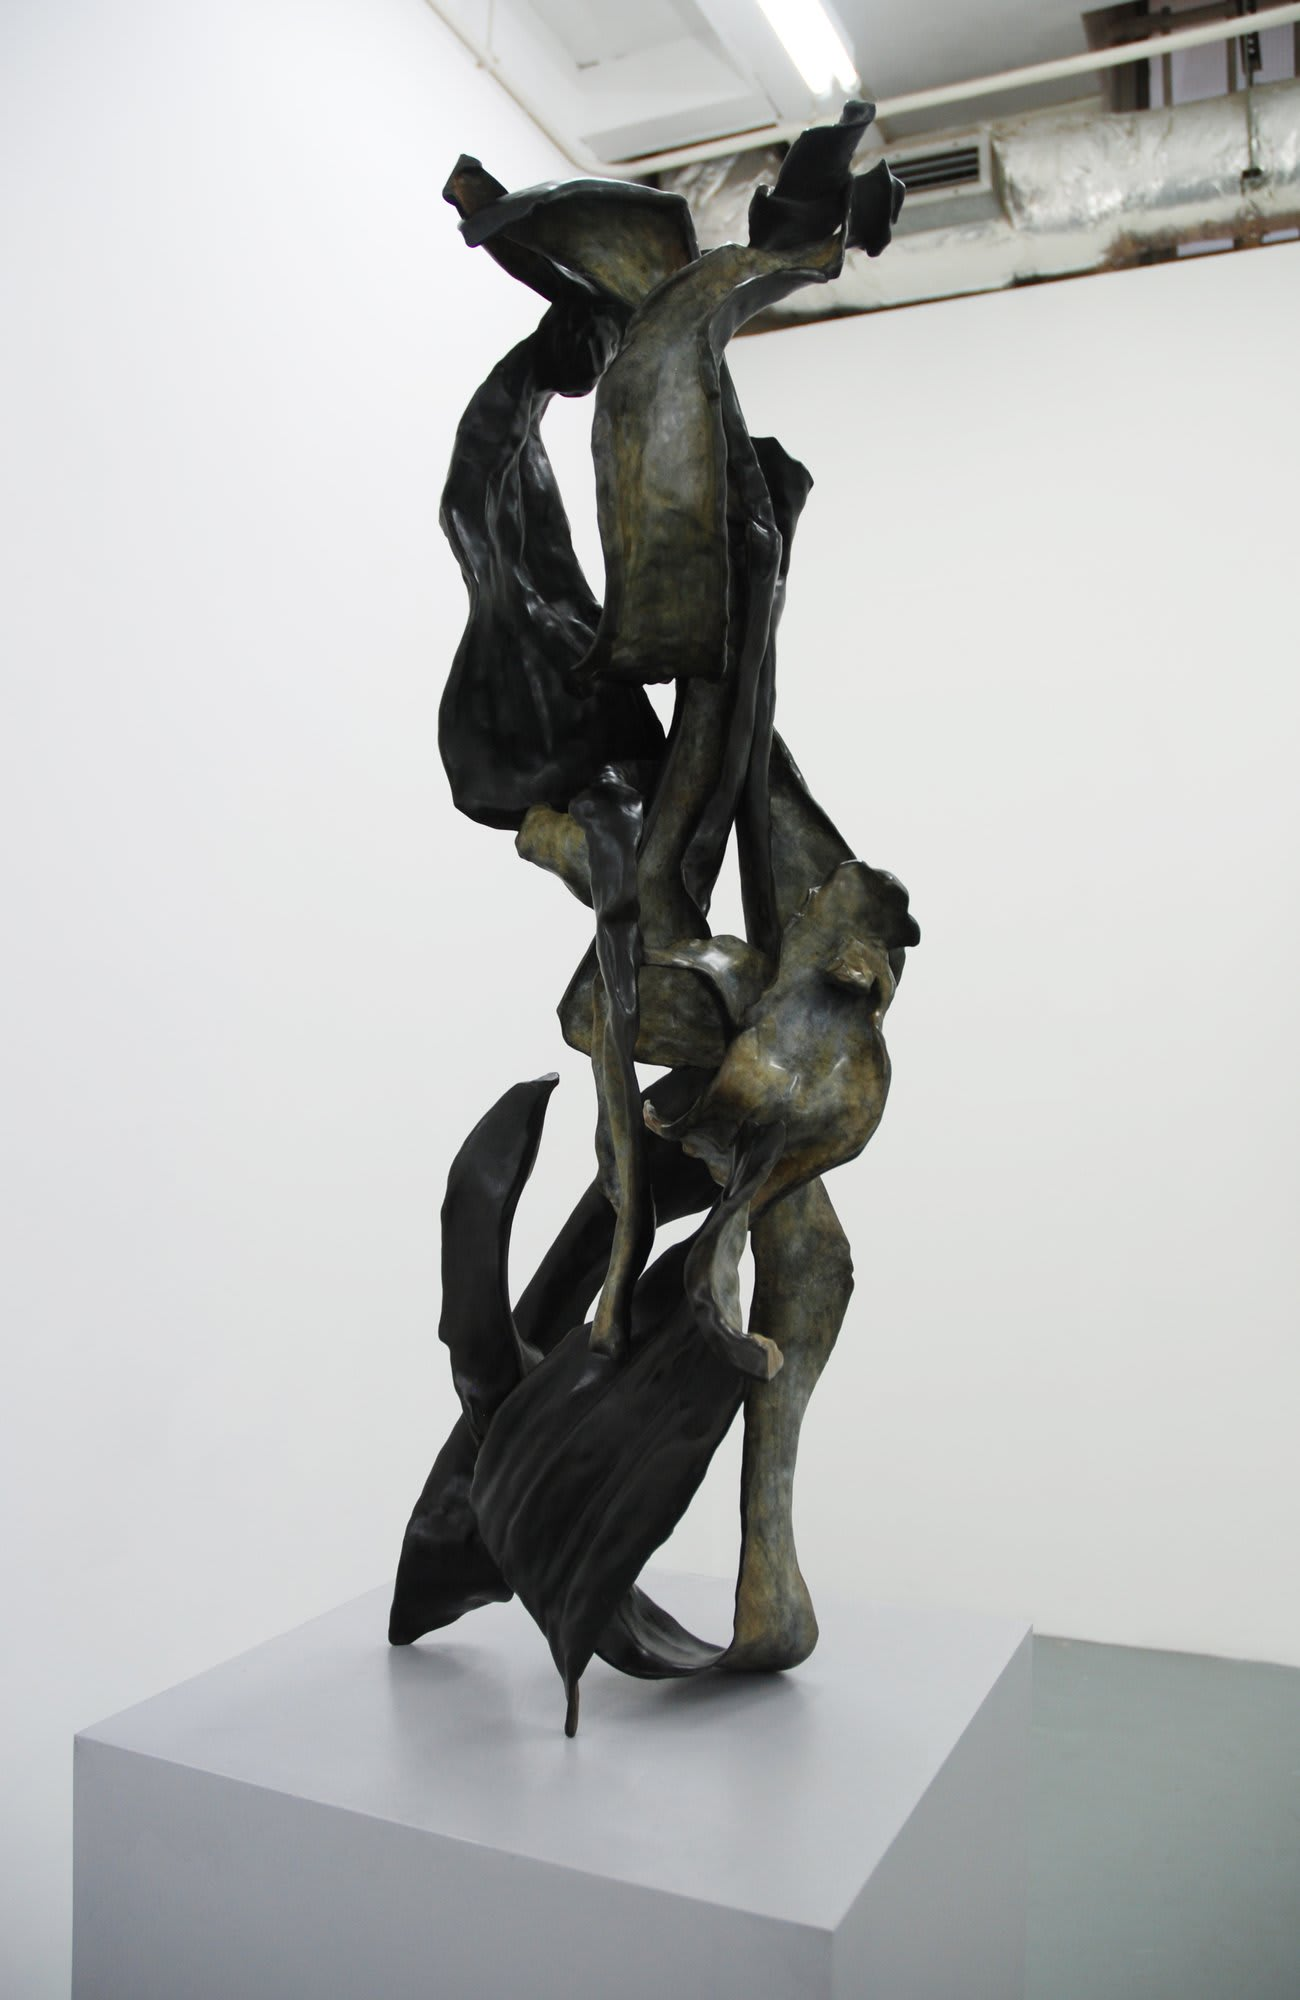 Untitled (ii), 2013, Bronze, 85 x 27 x 24 cm. Edition of 3 + 1 AP